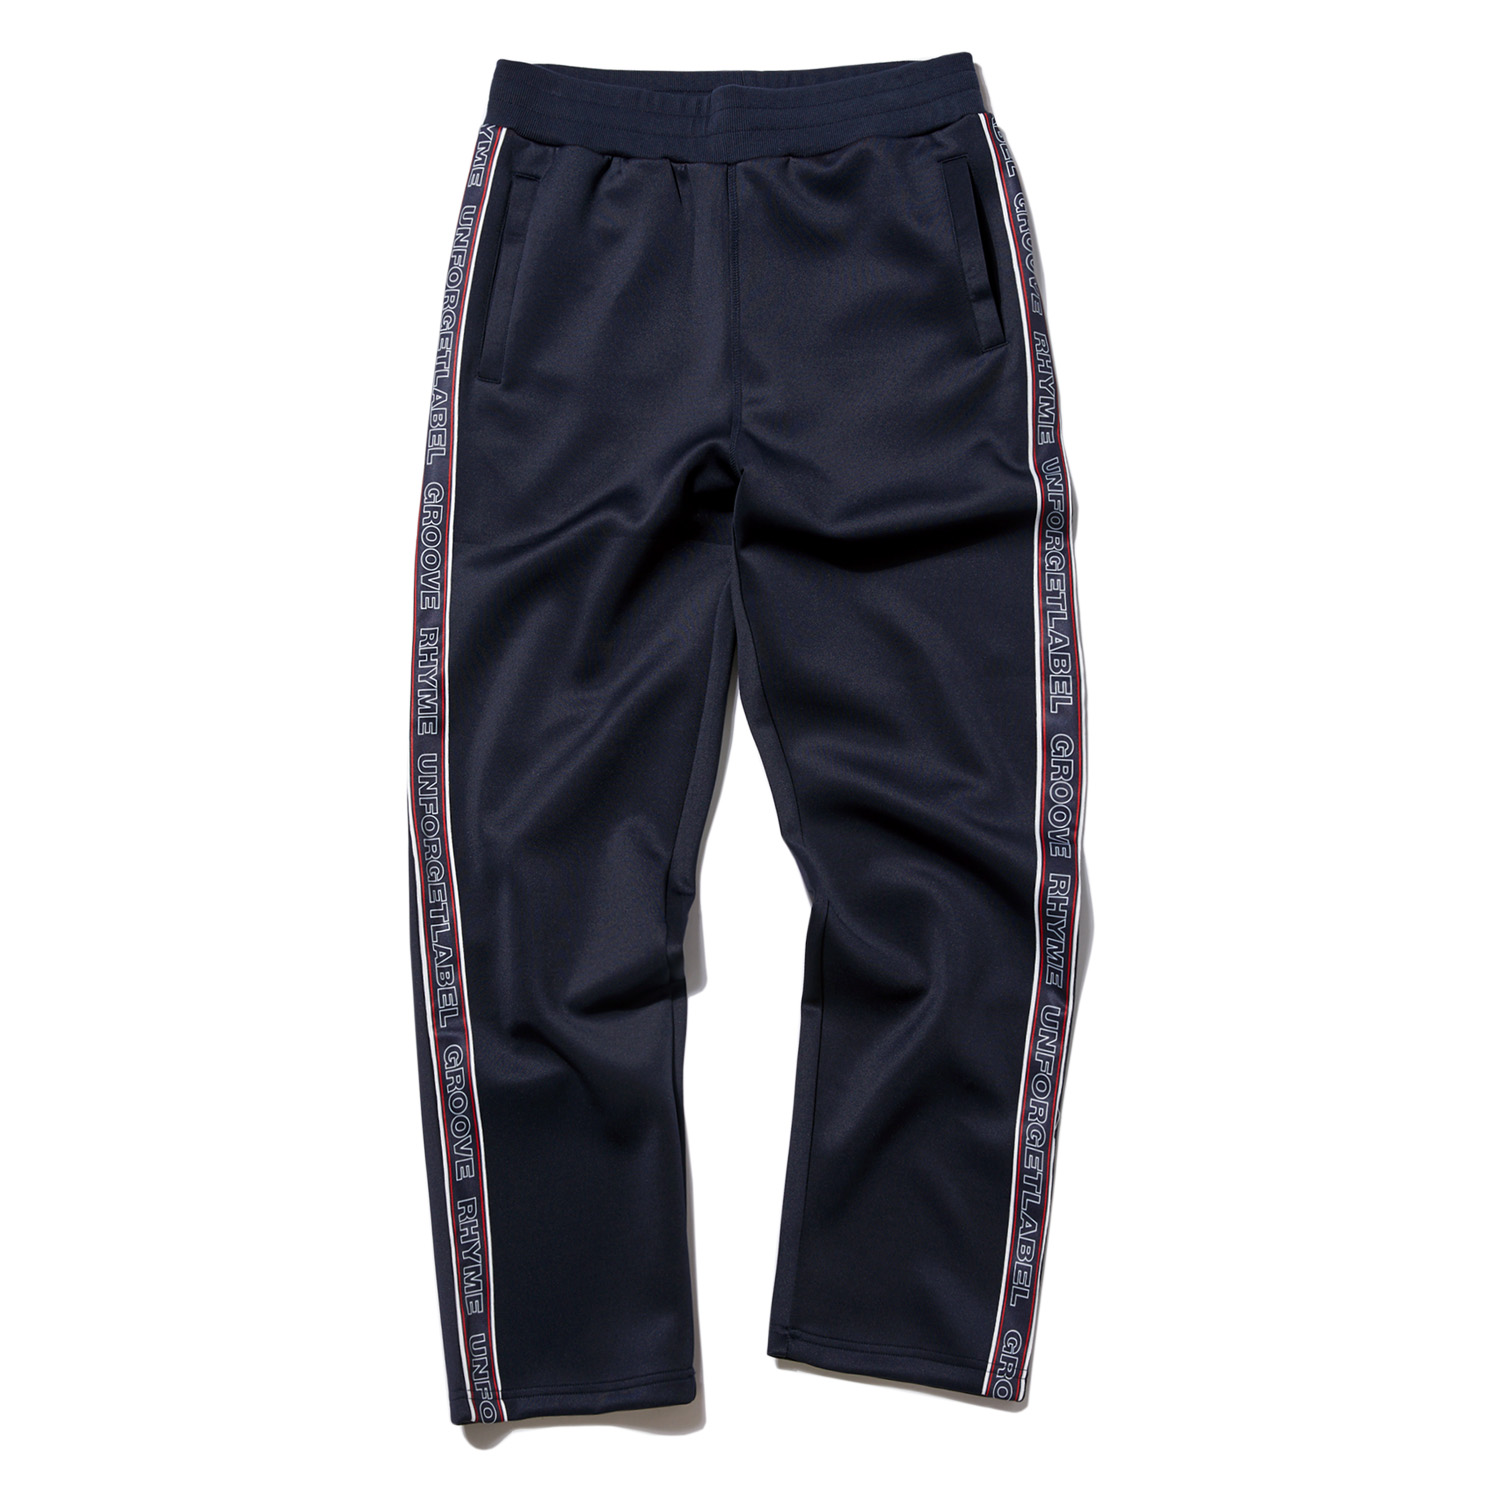 [단독할인]2018 JERSEY RUSSELL LOGO TAPE SET TRAINING PANTS (NAVY) [GTP003G33NA]